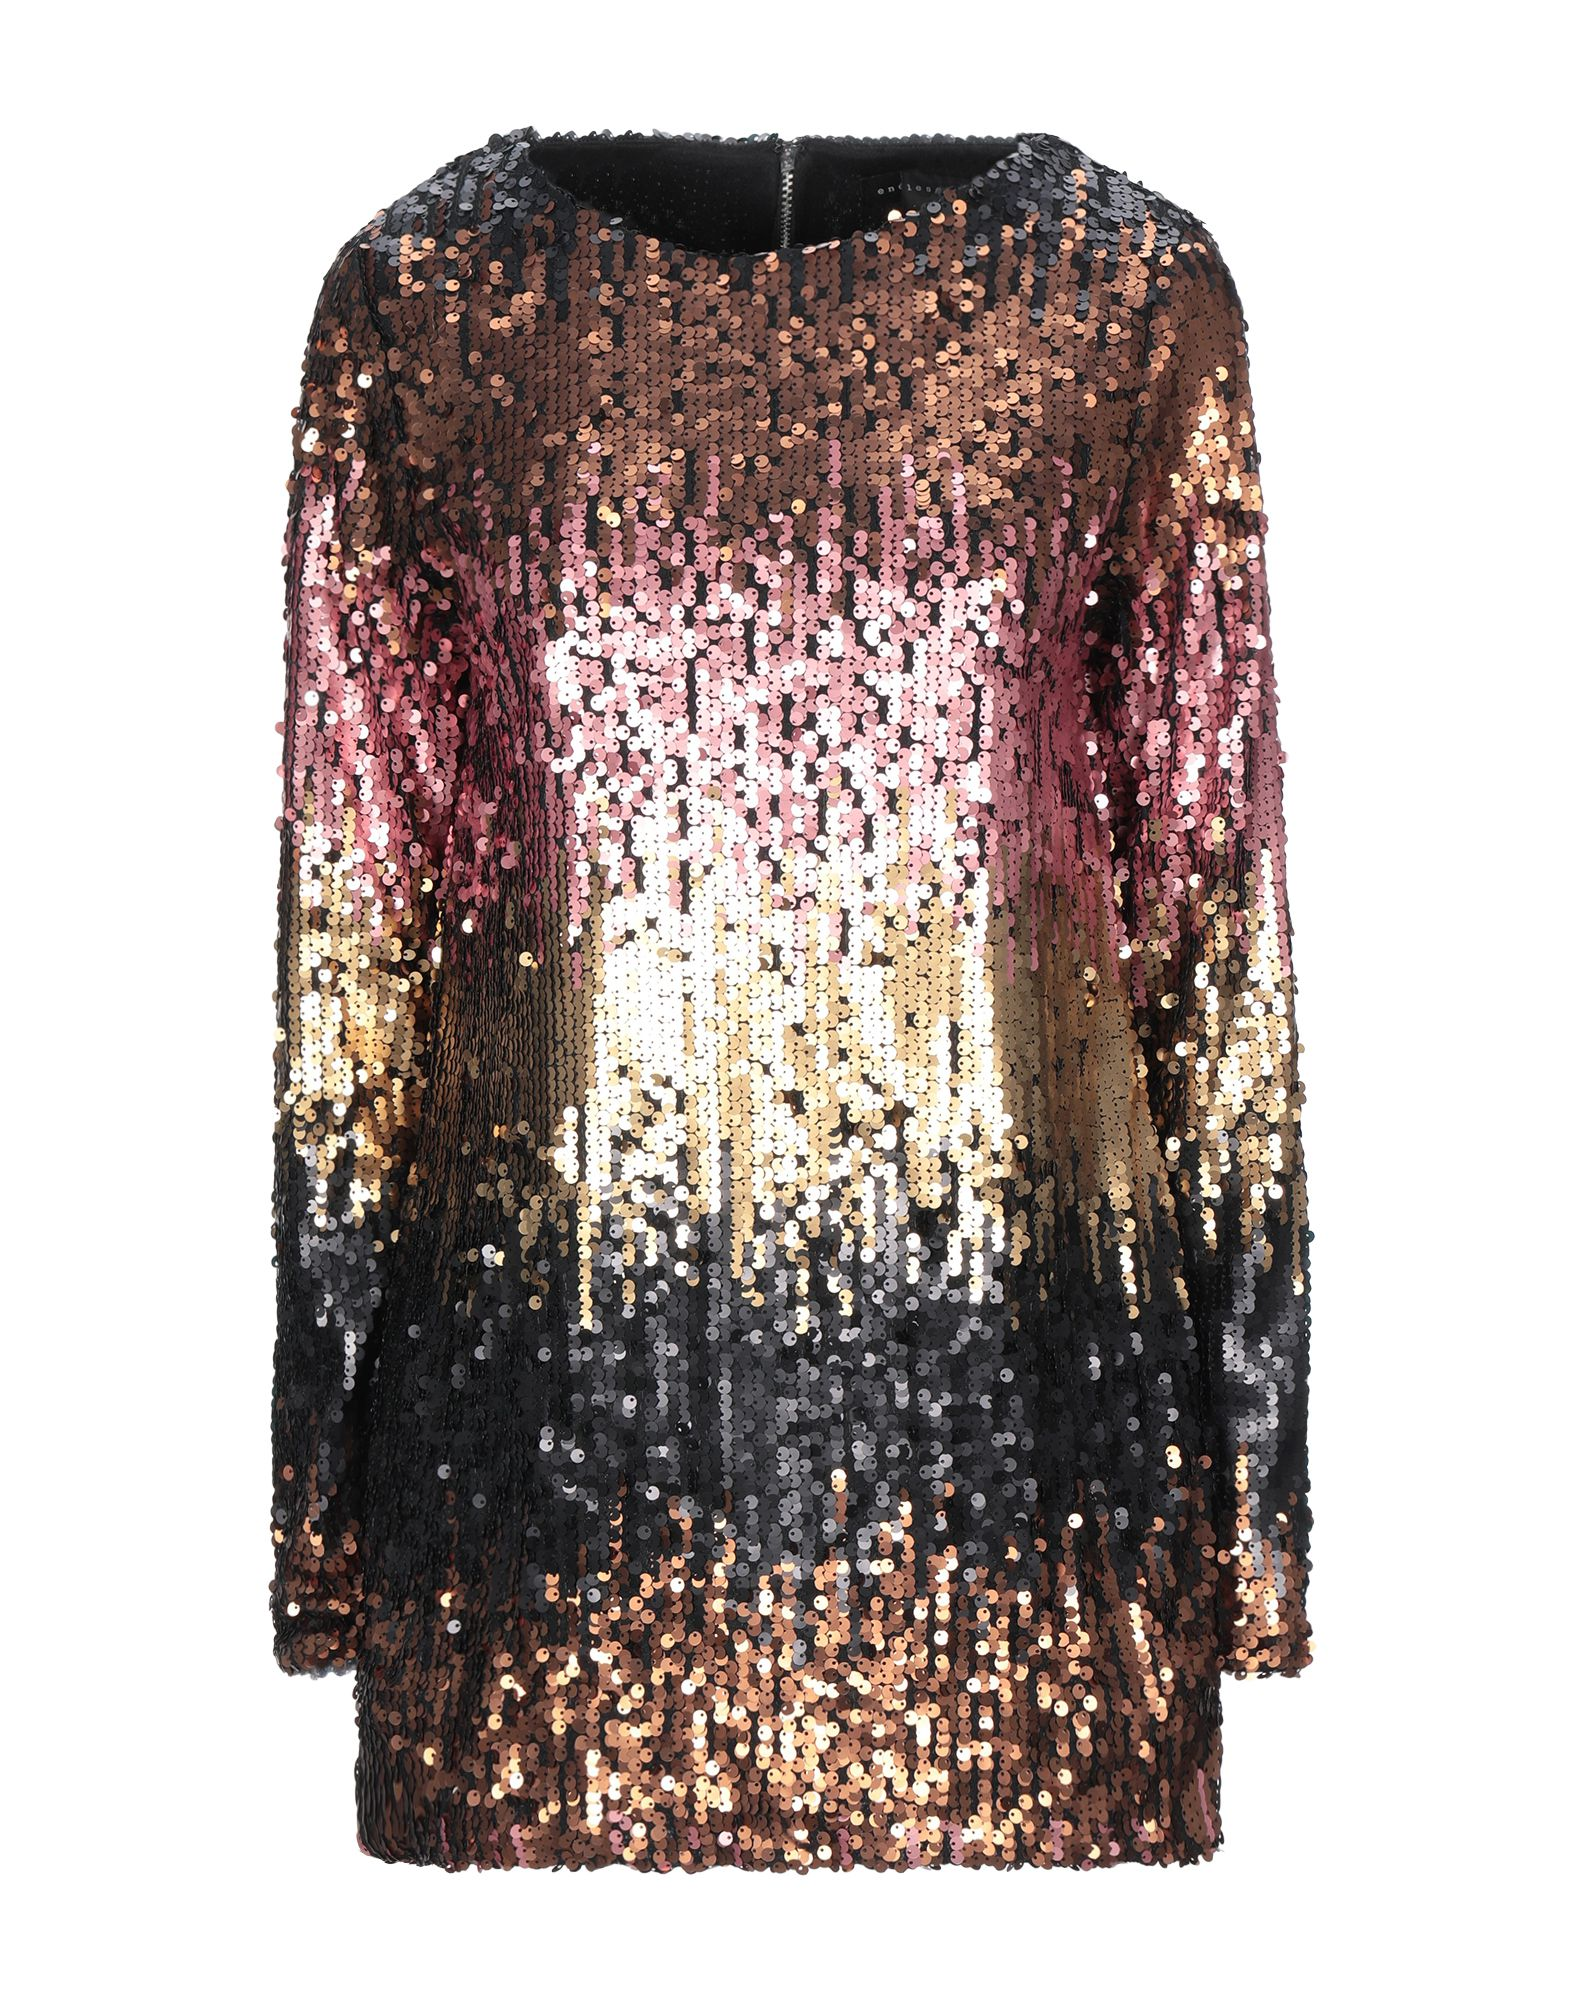 ENDLESS ROSE Blouses. jersey, sequins, multicolor pattern, rear closure, zipper closure, long sleeves, round collar, no pockets. 100% Polyester